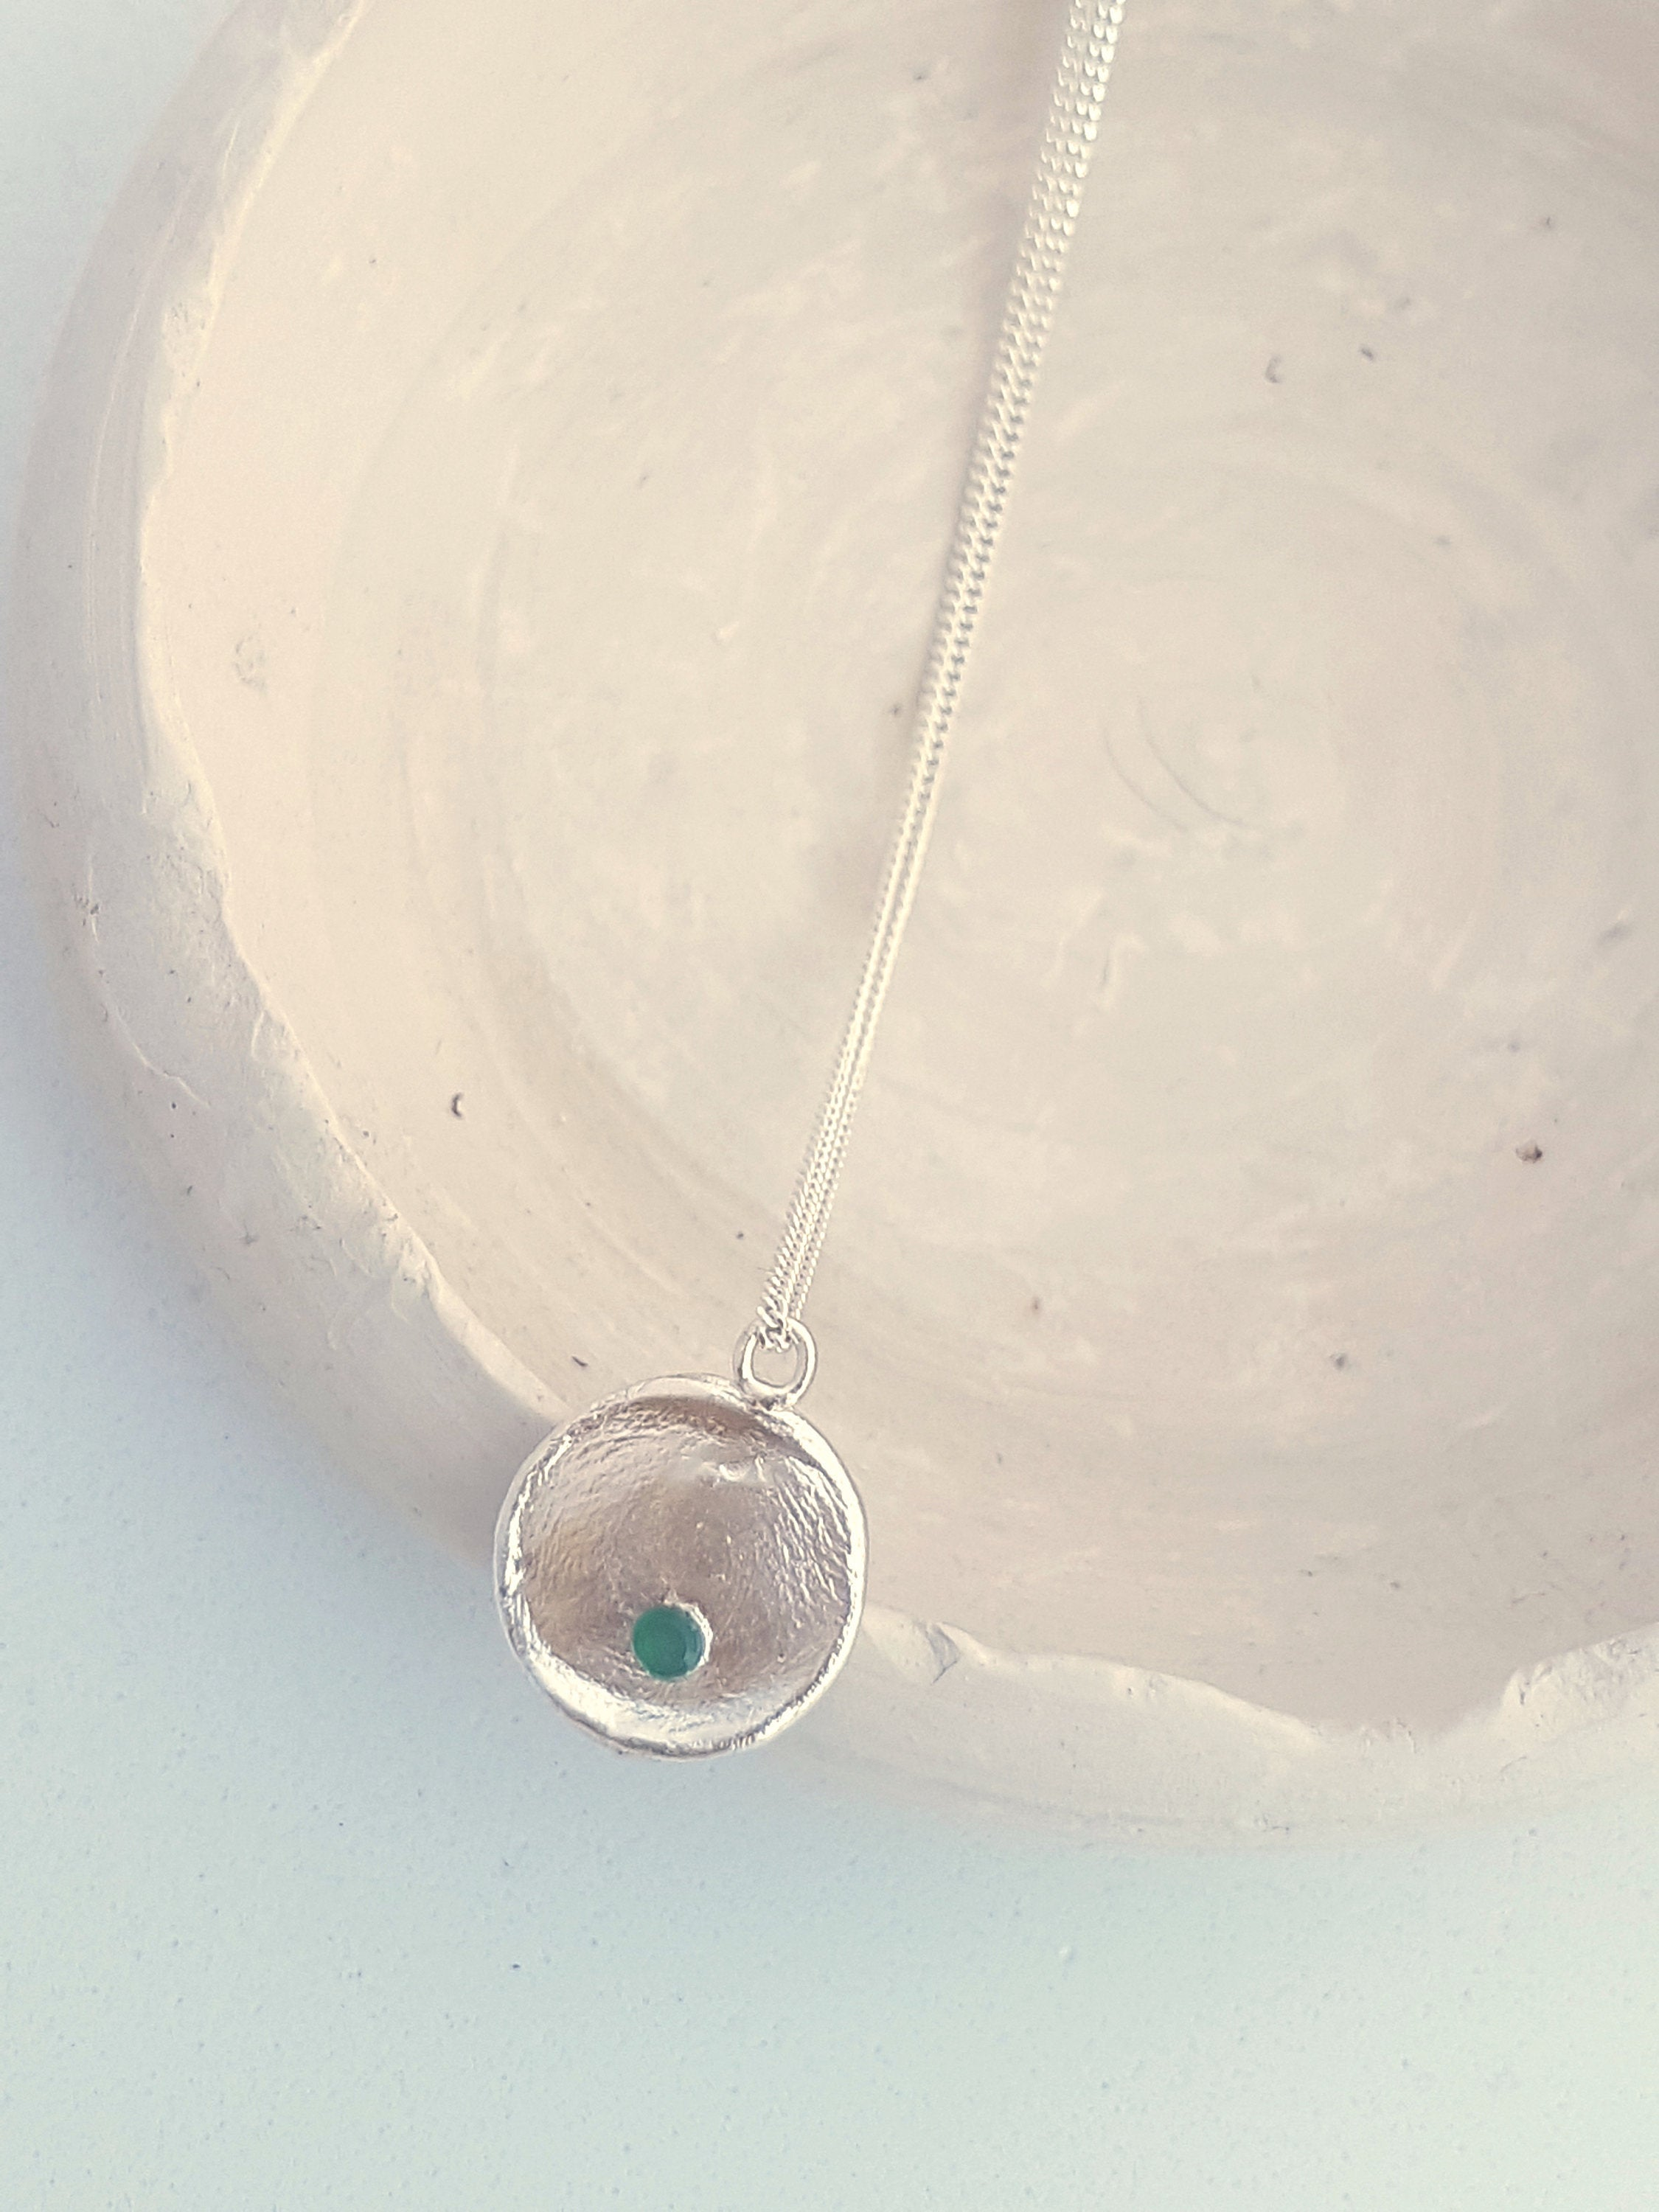 silver disk necklace with tiny emerald - delicate sterling silver layered necklace